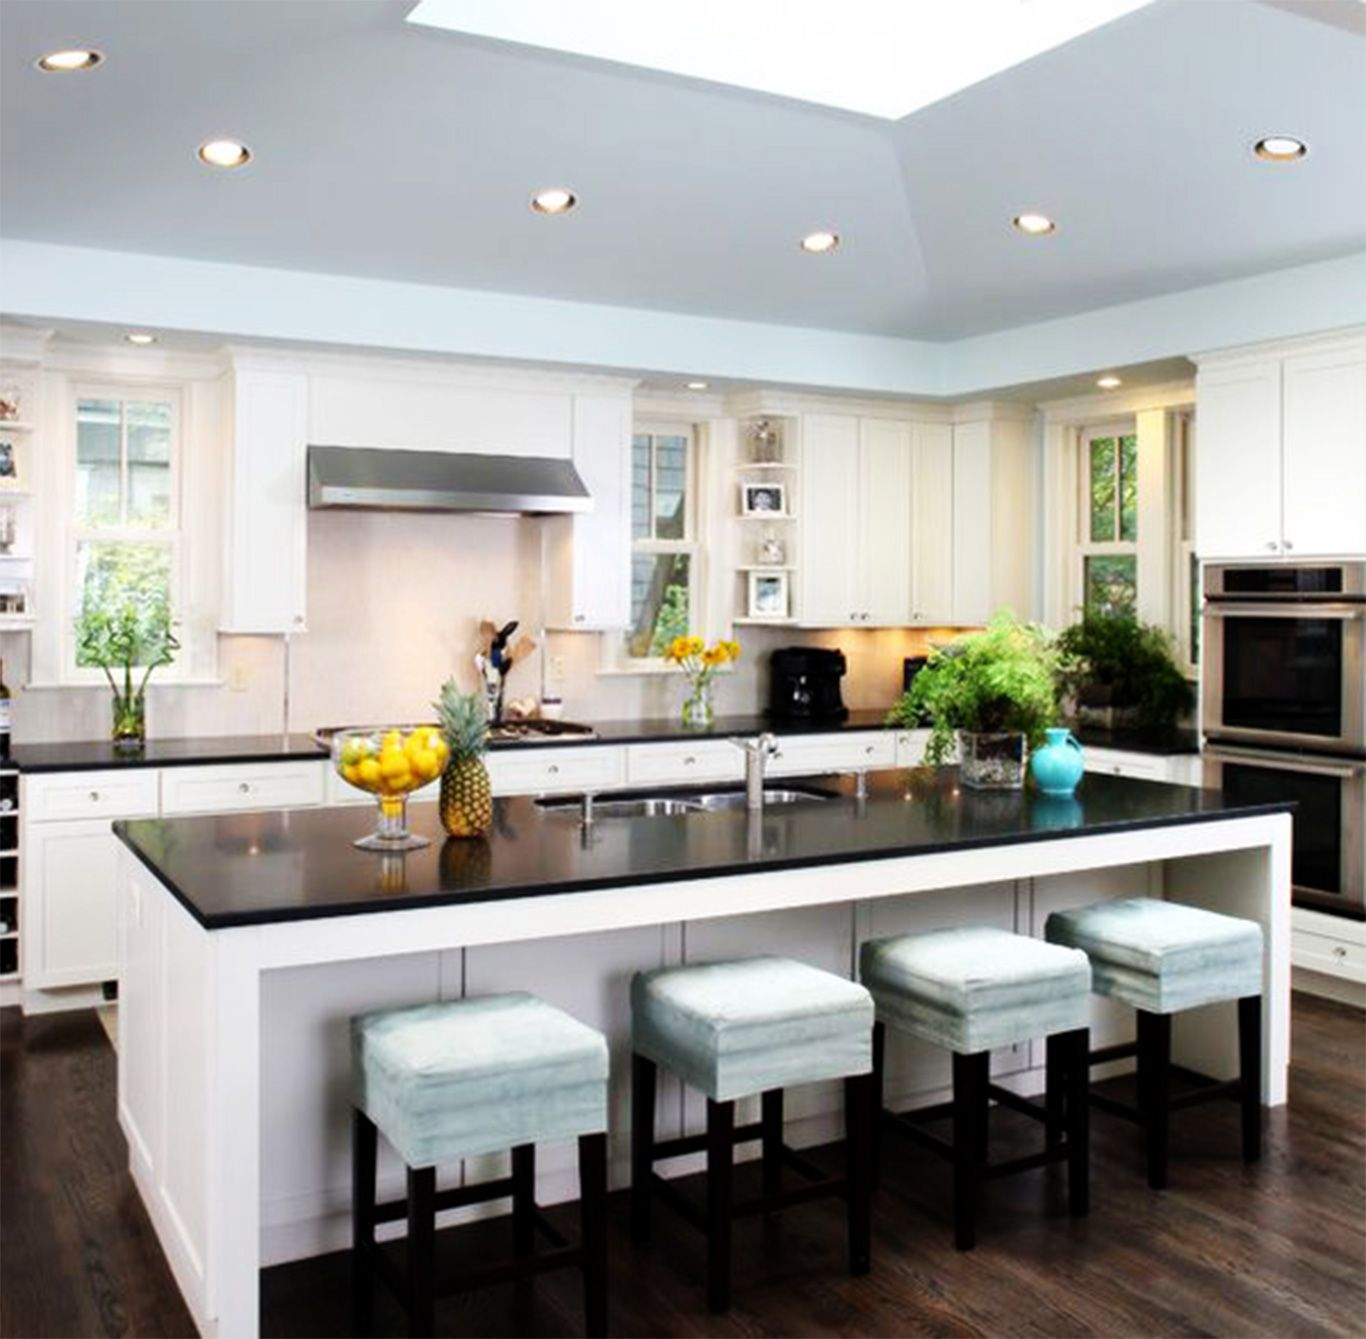 kitchen island with sink and dishwasher and seating | Kitchen Island Ideas  | Pinterest | Dishwashers, Sinks and Kitchens